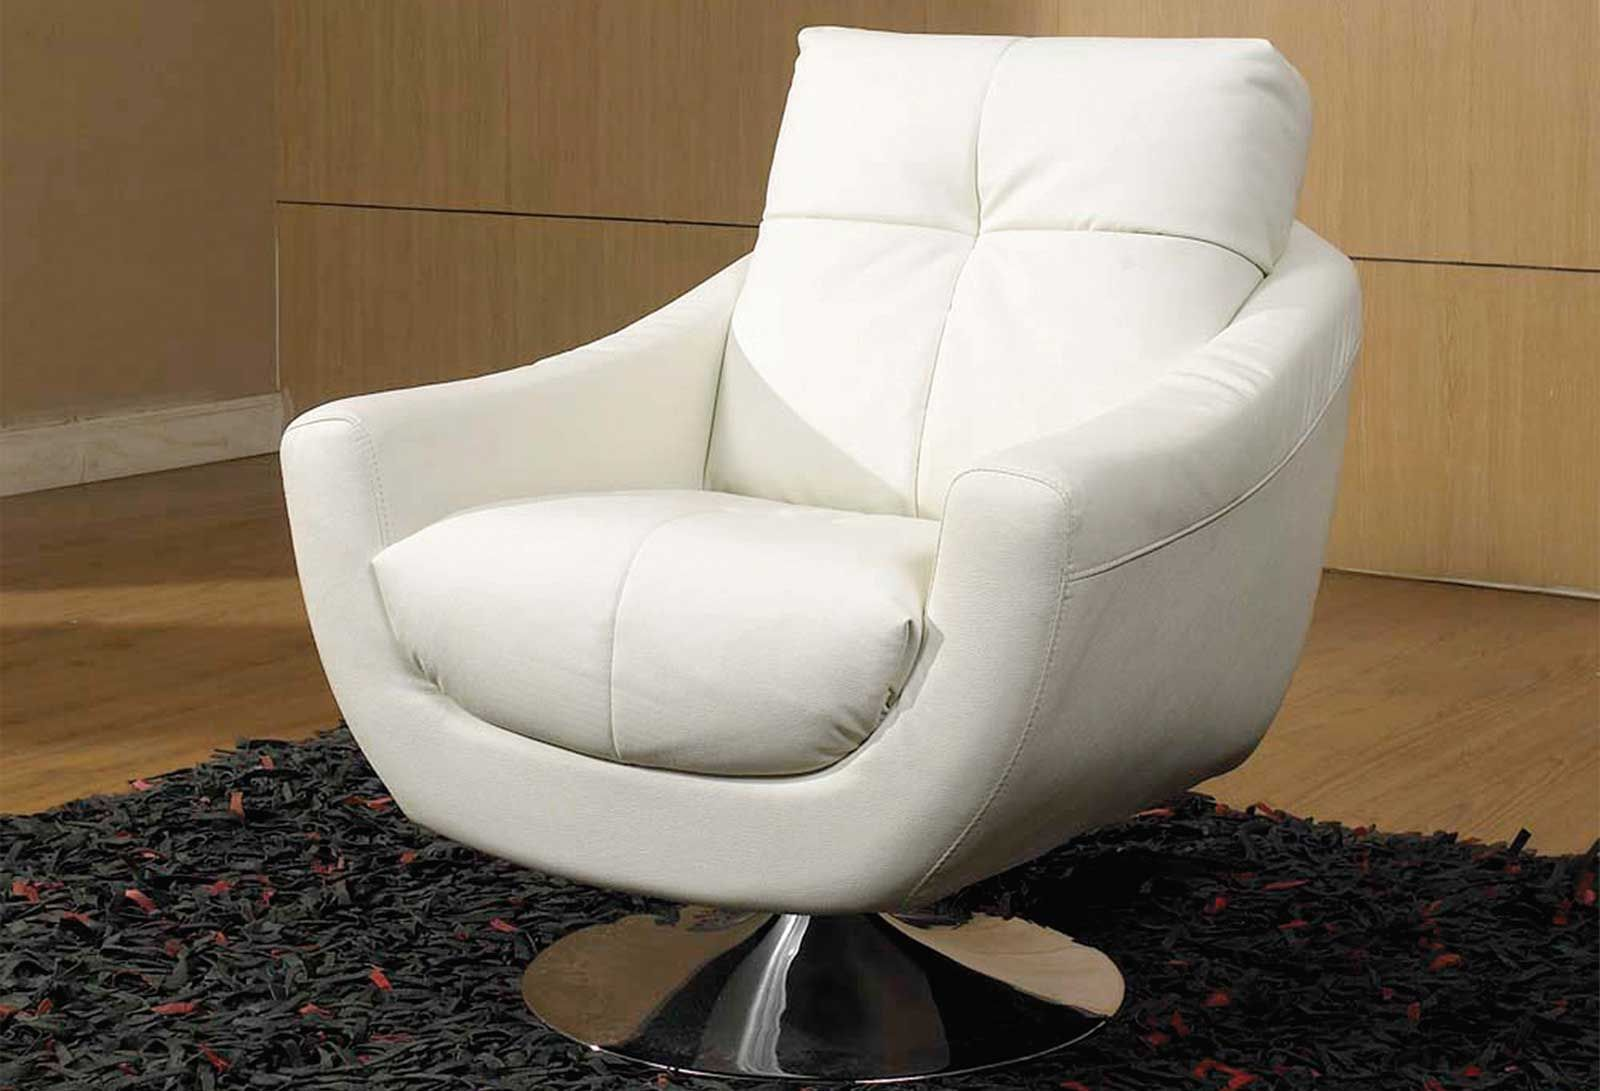 The Benefits Of Best Modern Swivel Chairs For Living Room Darbylanefurniture Com In 2020 Living Room Chairs Modern Swivel Chair White Leather Office Chair